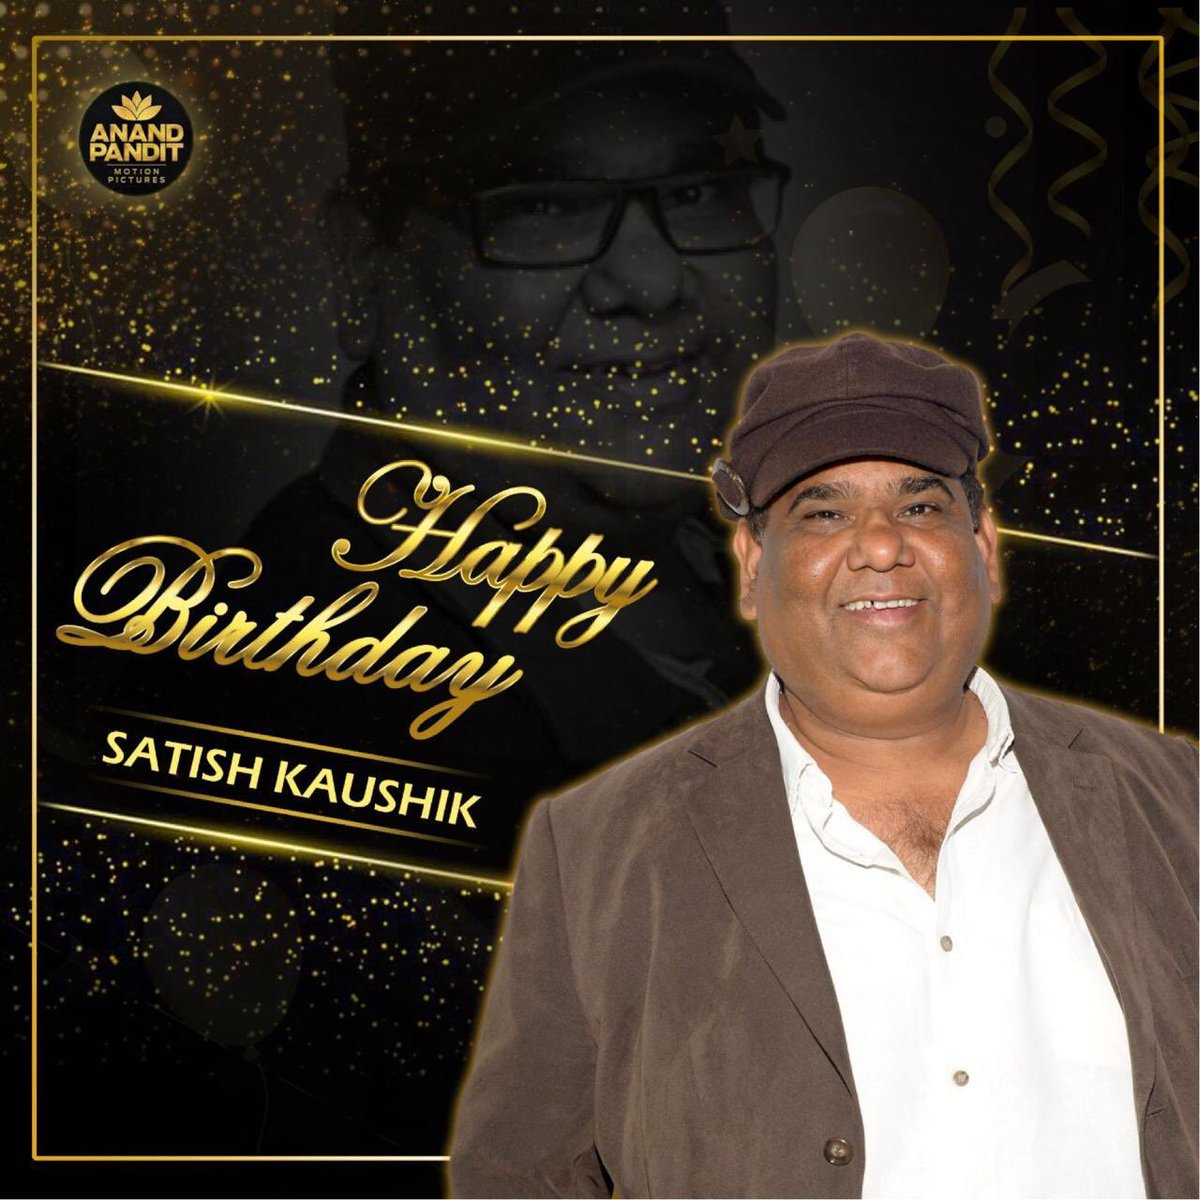 Happy birthday to a close friend, an excellent actor, ace director-producer and a gem of a person @satishkaushik2. Hoping the new year is filled with lots of happiness and success for you!  #HappyBirthday #HappyBirthdaySatishKaushik #SatishKaushik https://t.co/mTv3kAqdUd